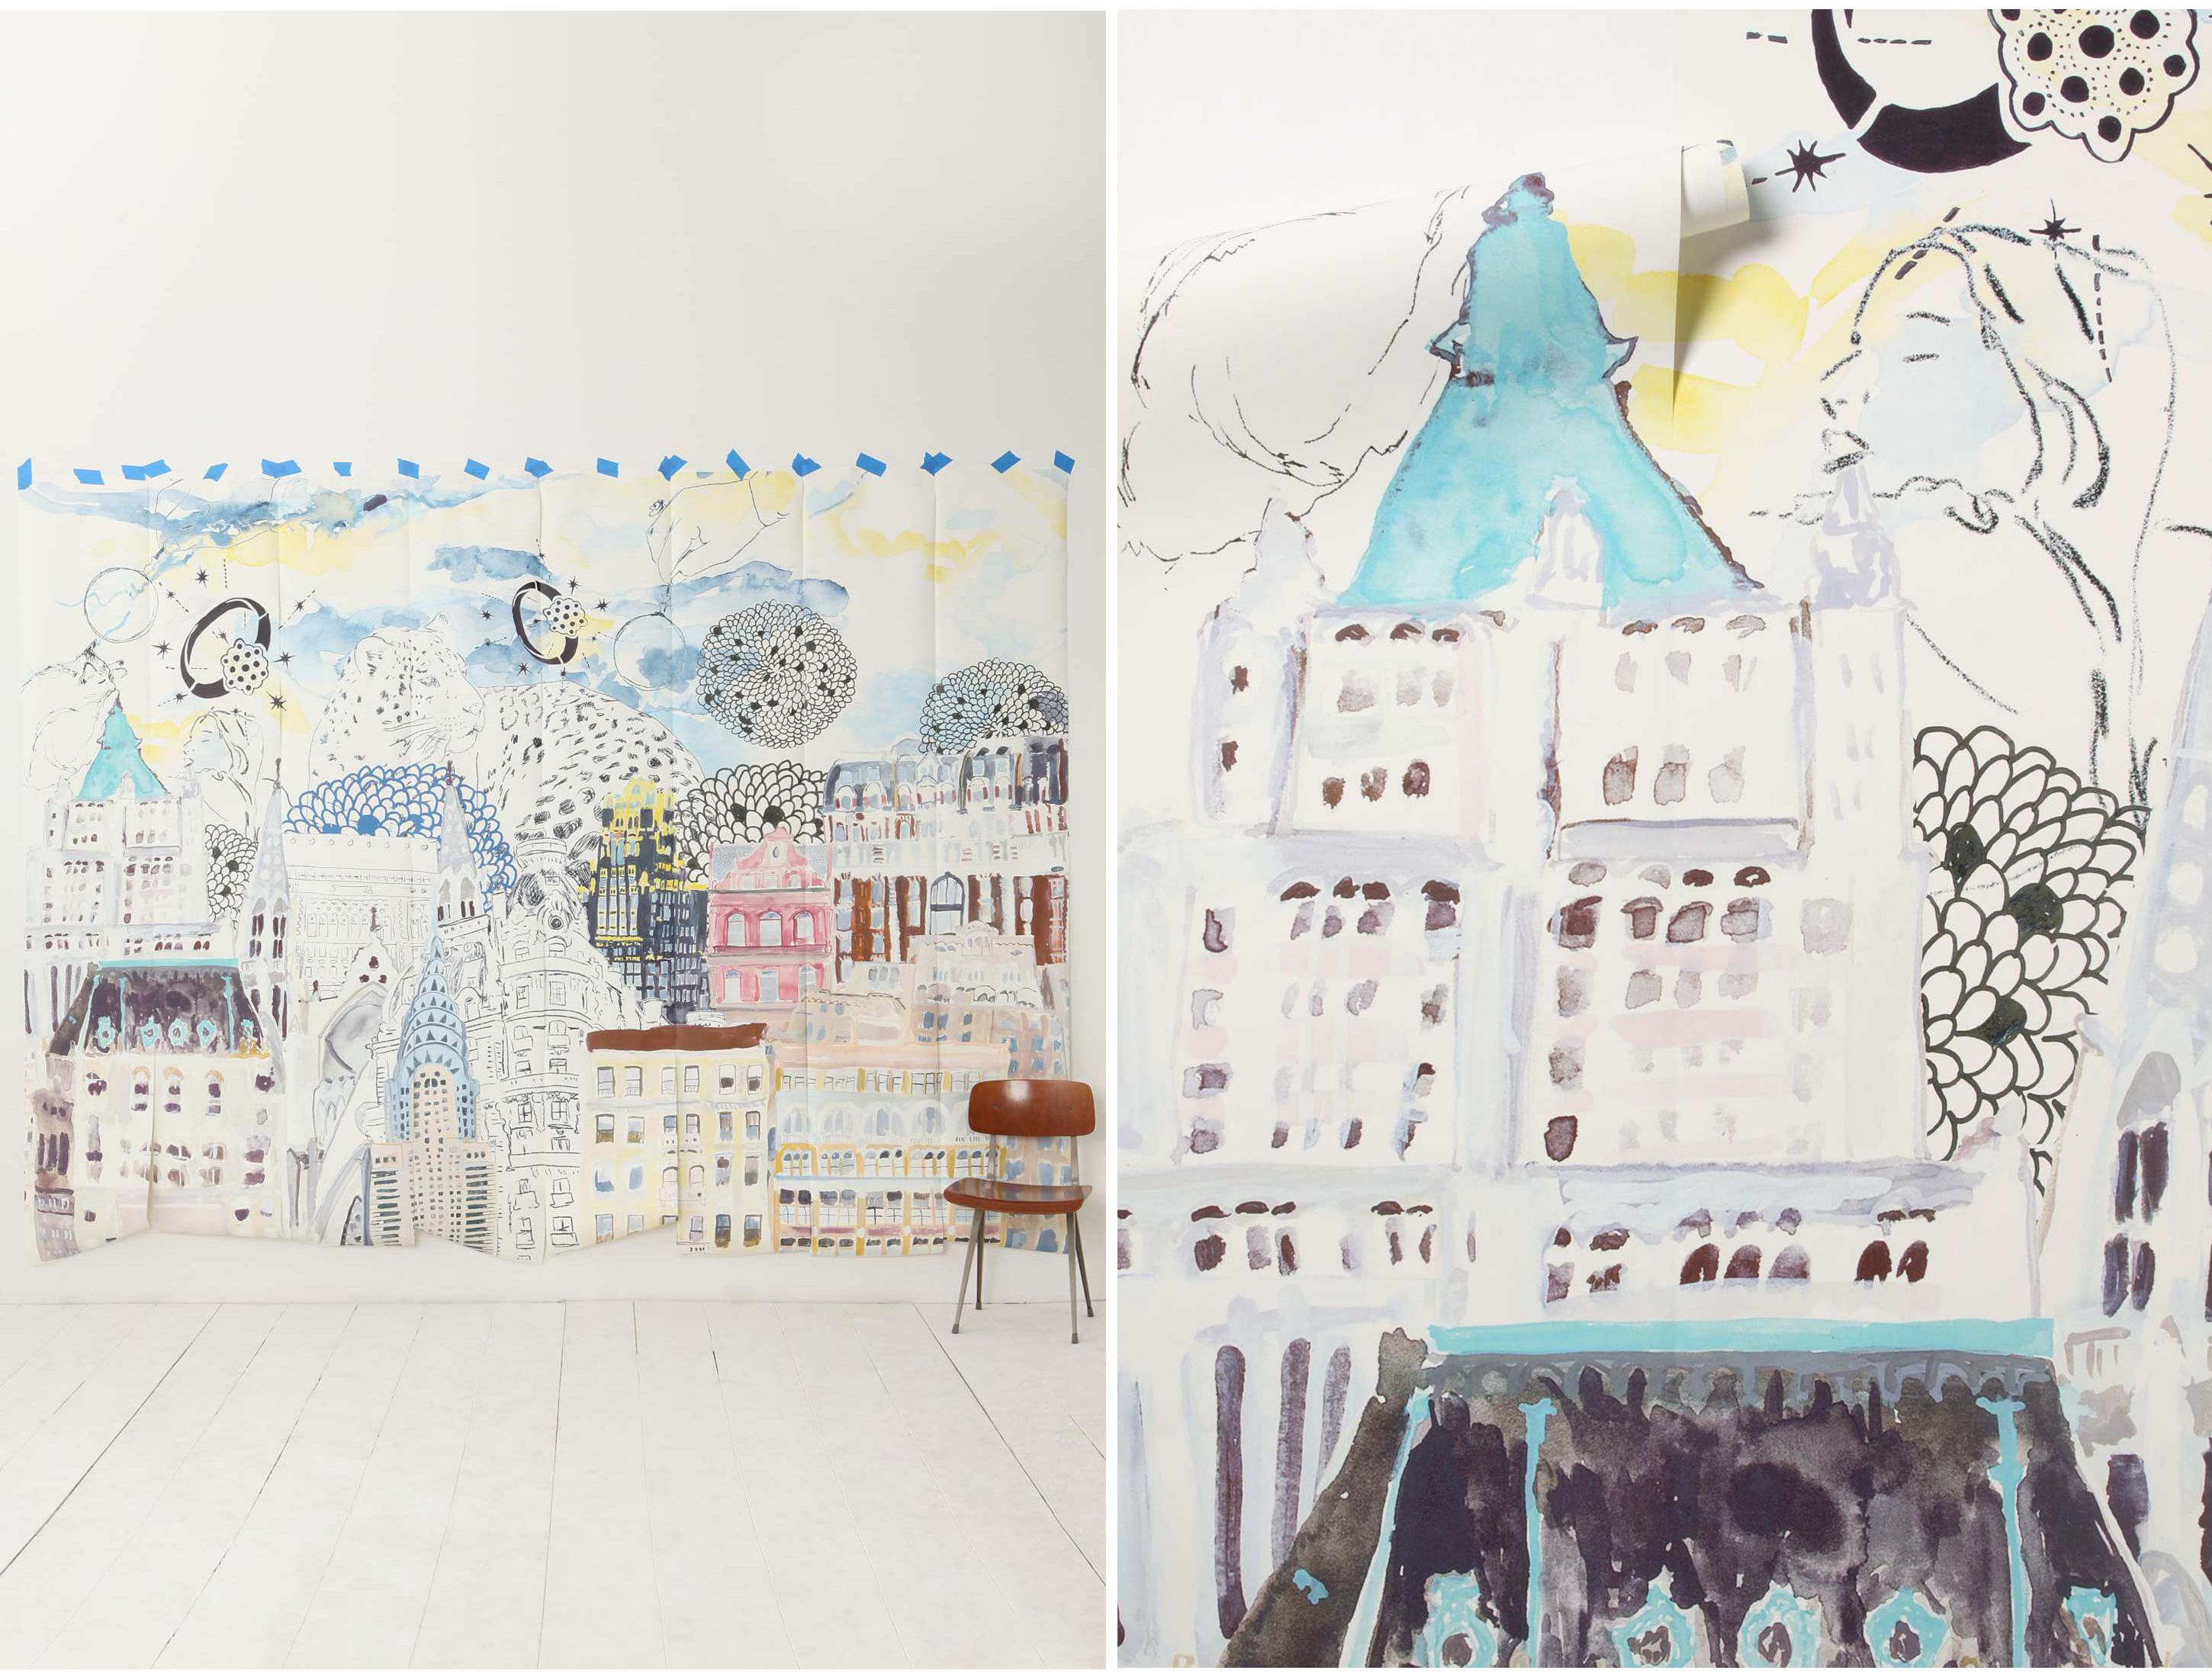 Focal wall (already own) Anthropologie Dreamscape Mural